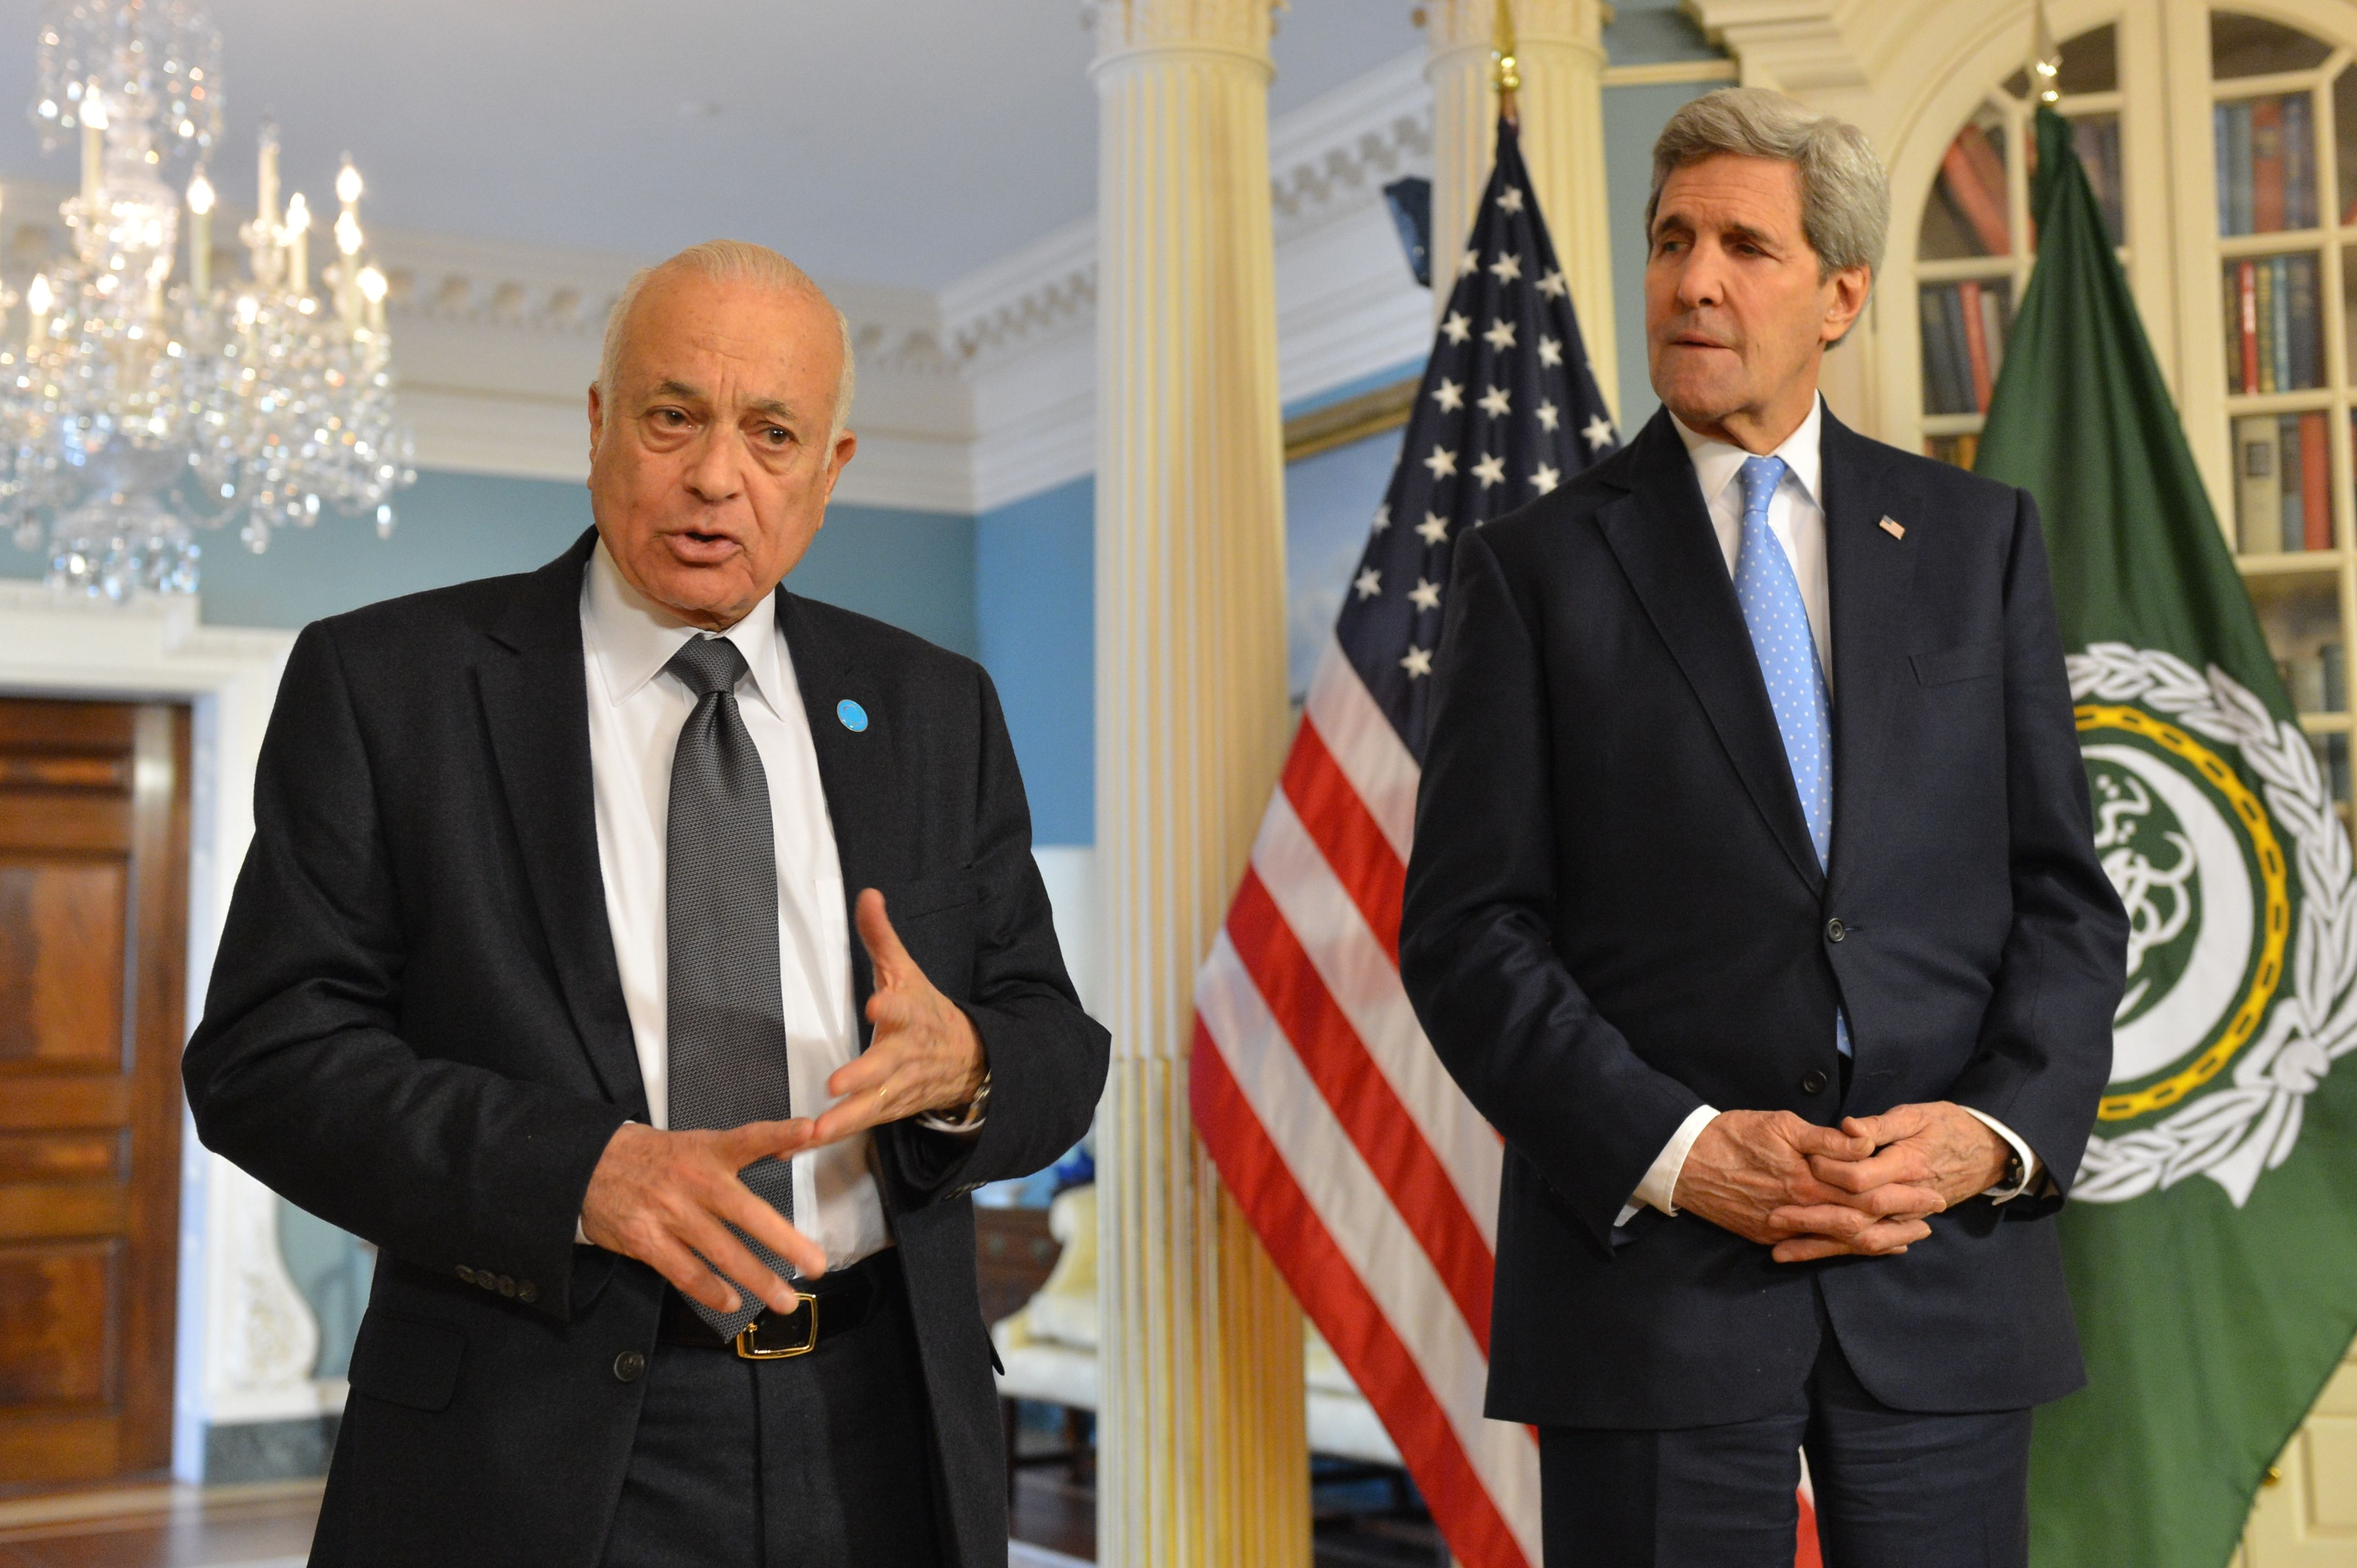 secretary-kerry-meeting-with-arab-league-secretary-general-elaraby-at-white-house-summit-cve-